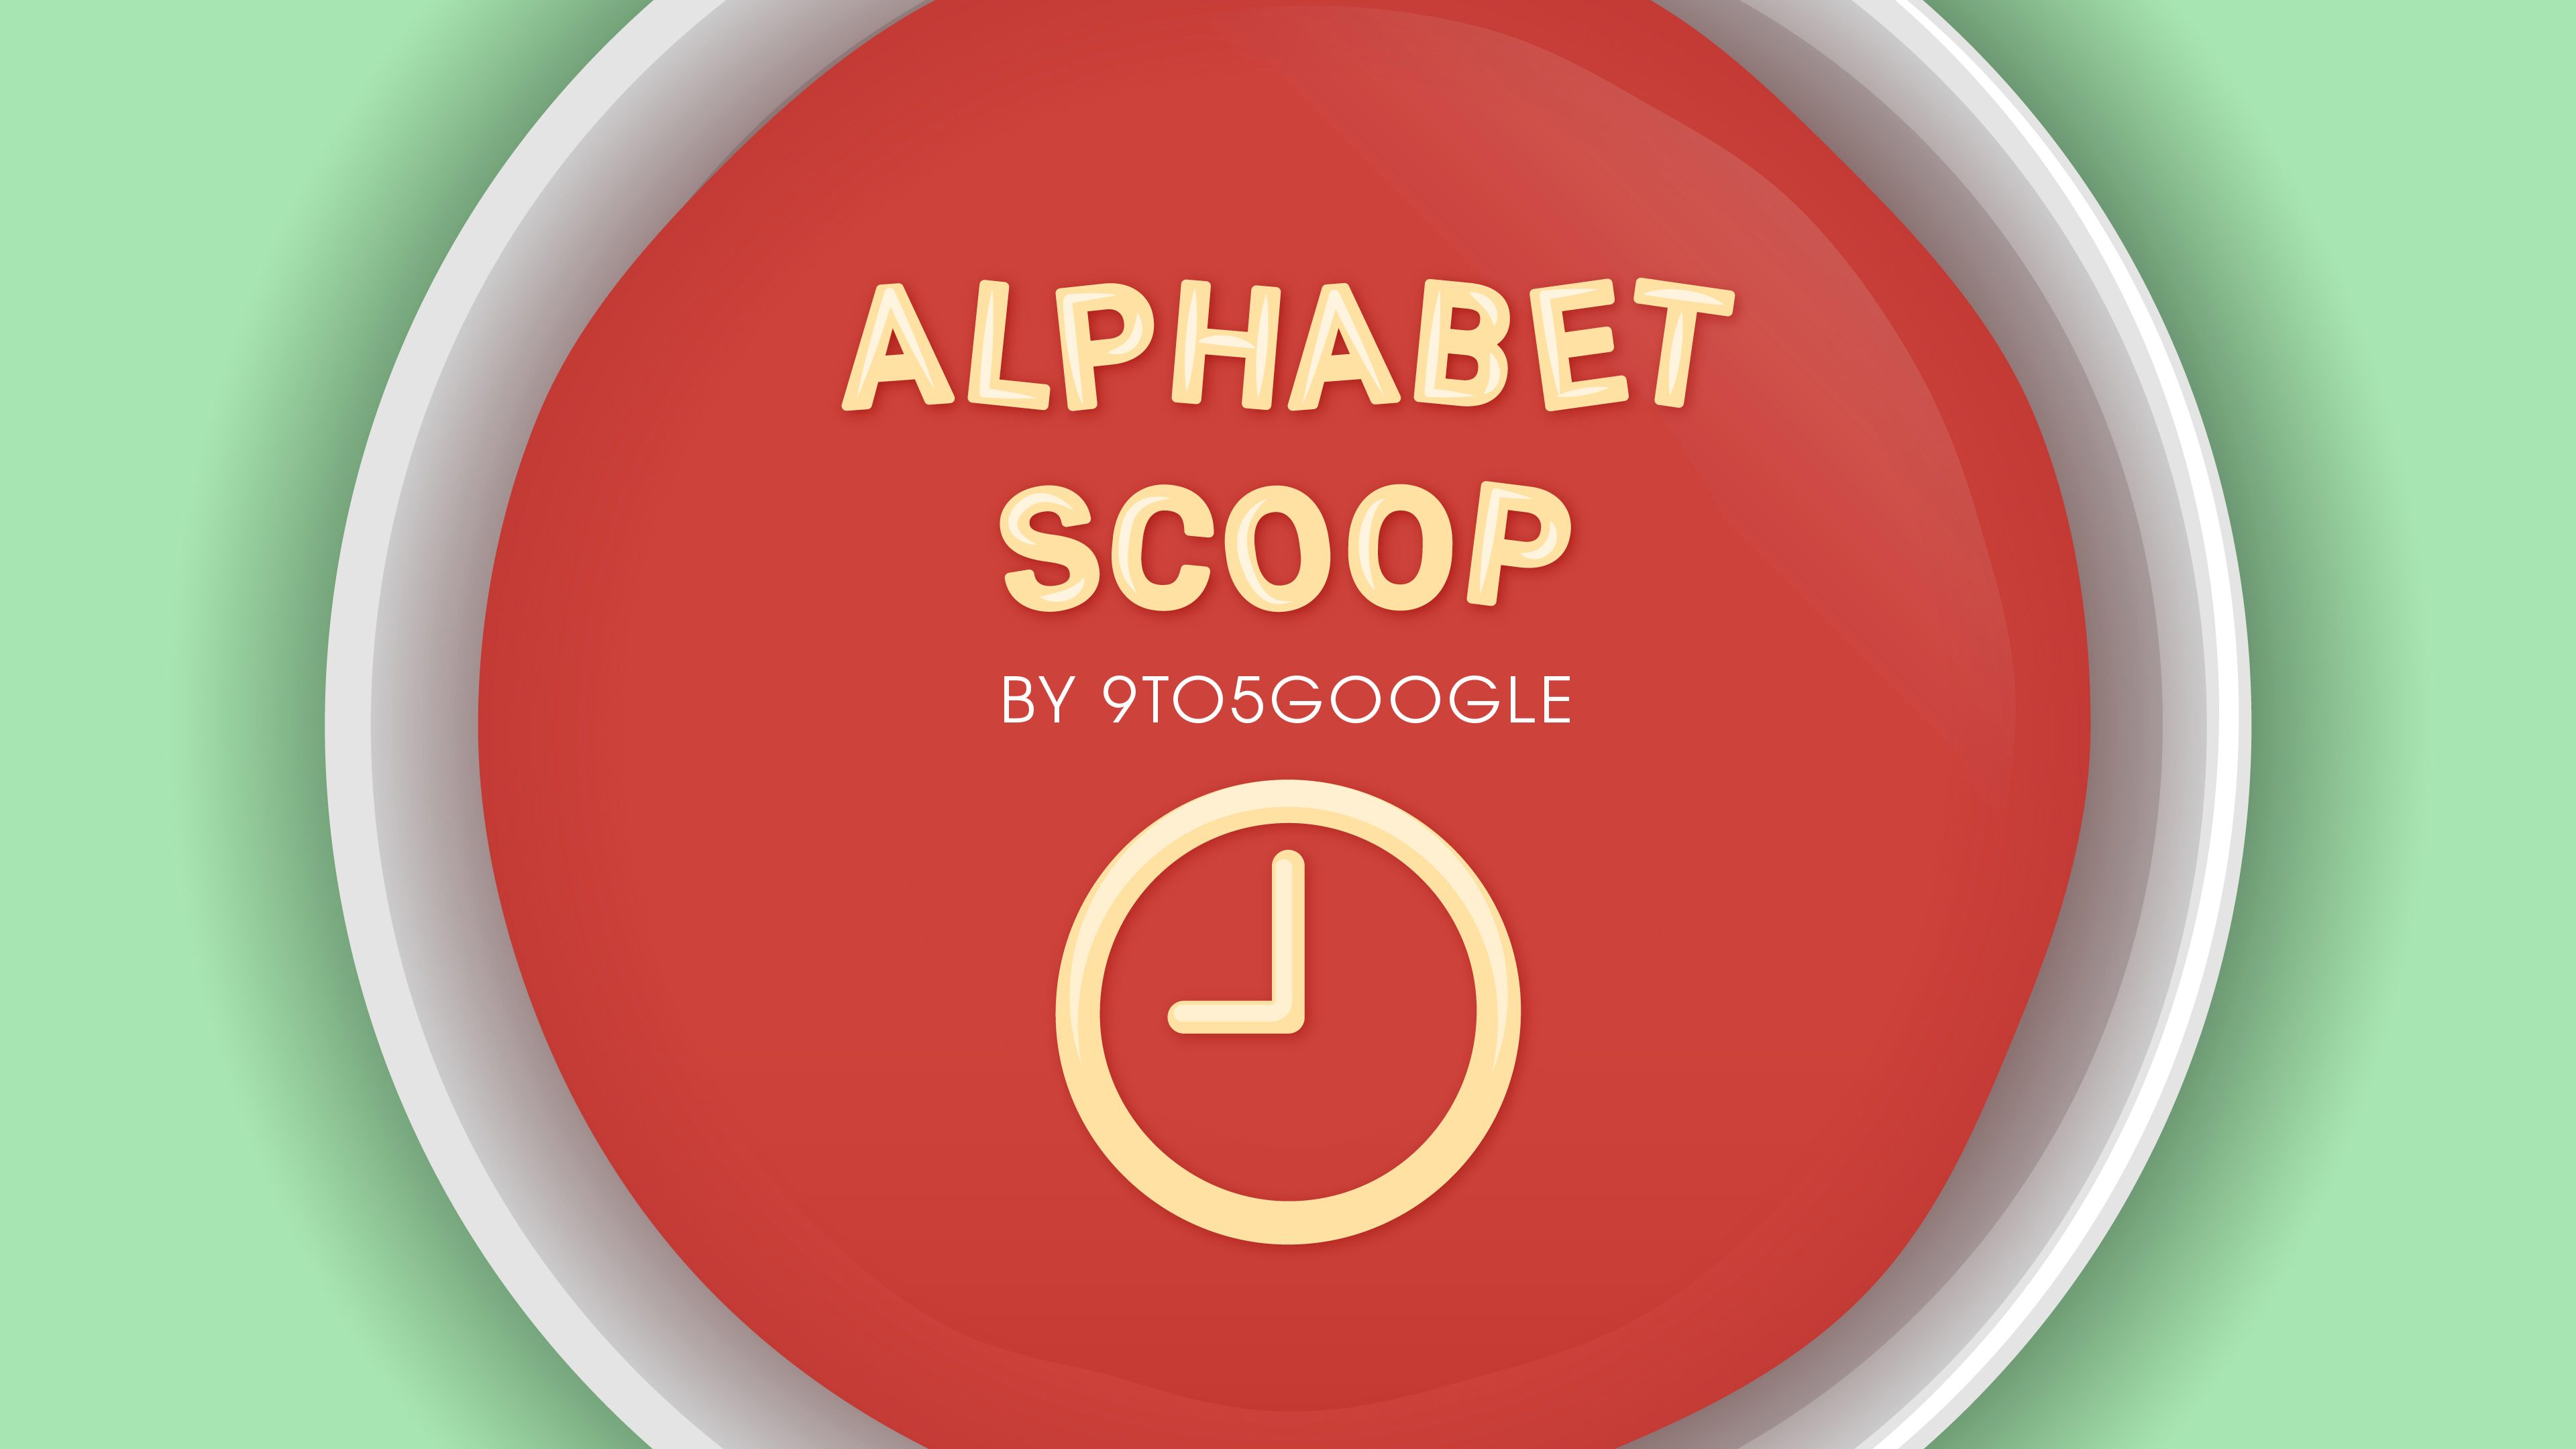 Alphabet Scoop 099: Android 11 launch, Pixel 5, and Surface Duo vs Fold 2